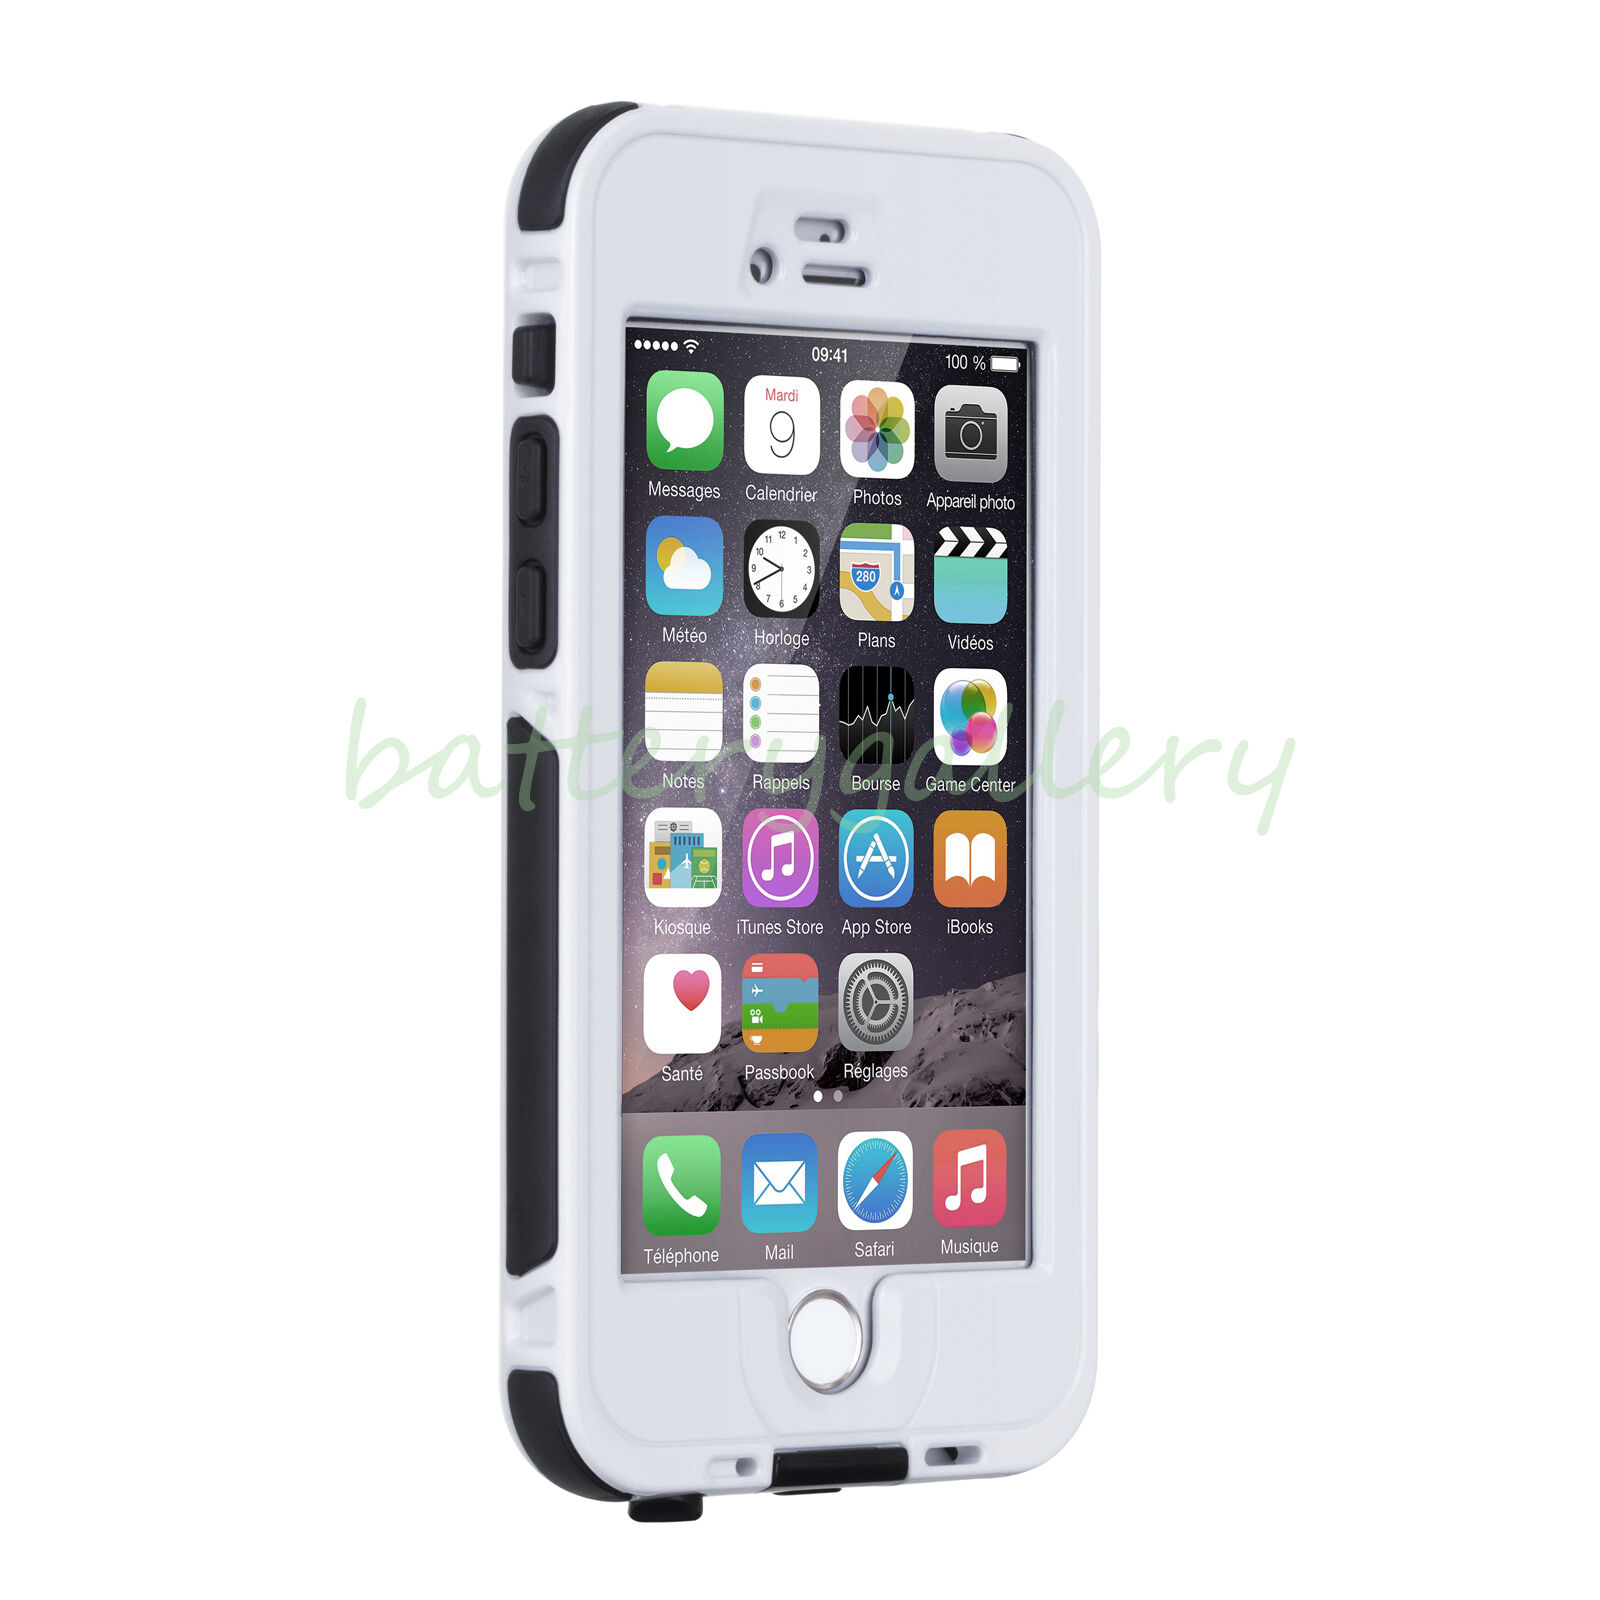 WATERPROOF SHOCKPROOF DIRT PROOF CASE COVER FOR APPLE IPHONE 6,7 & PLUS